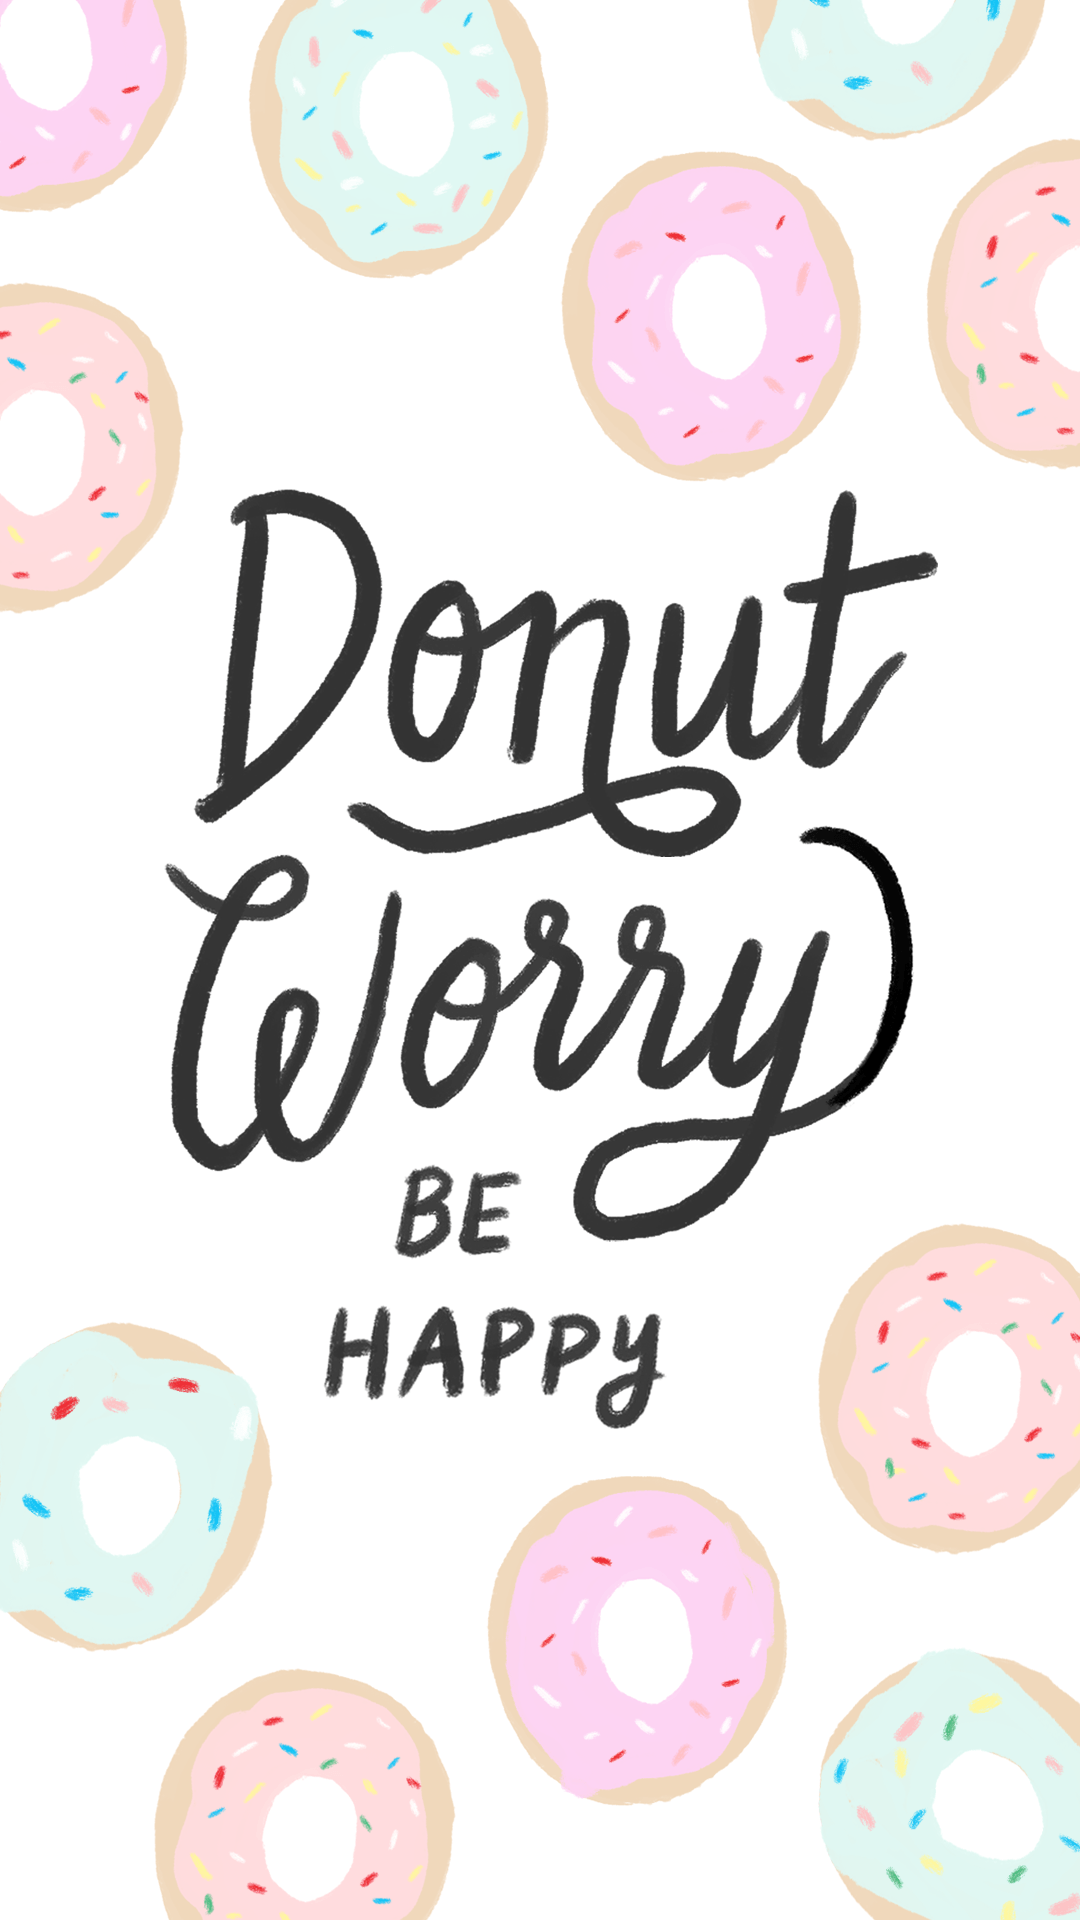 Cute Donut Wallpapers   Top Cute Donut Backgrounds 1080x1920